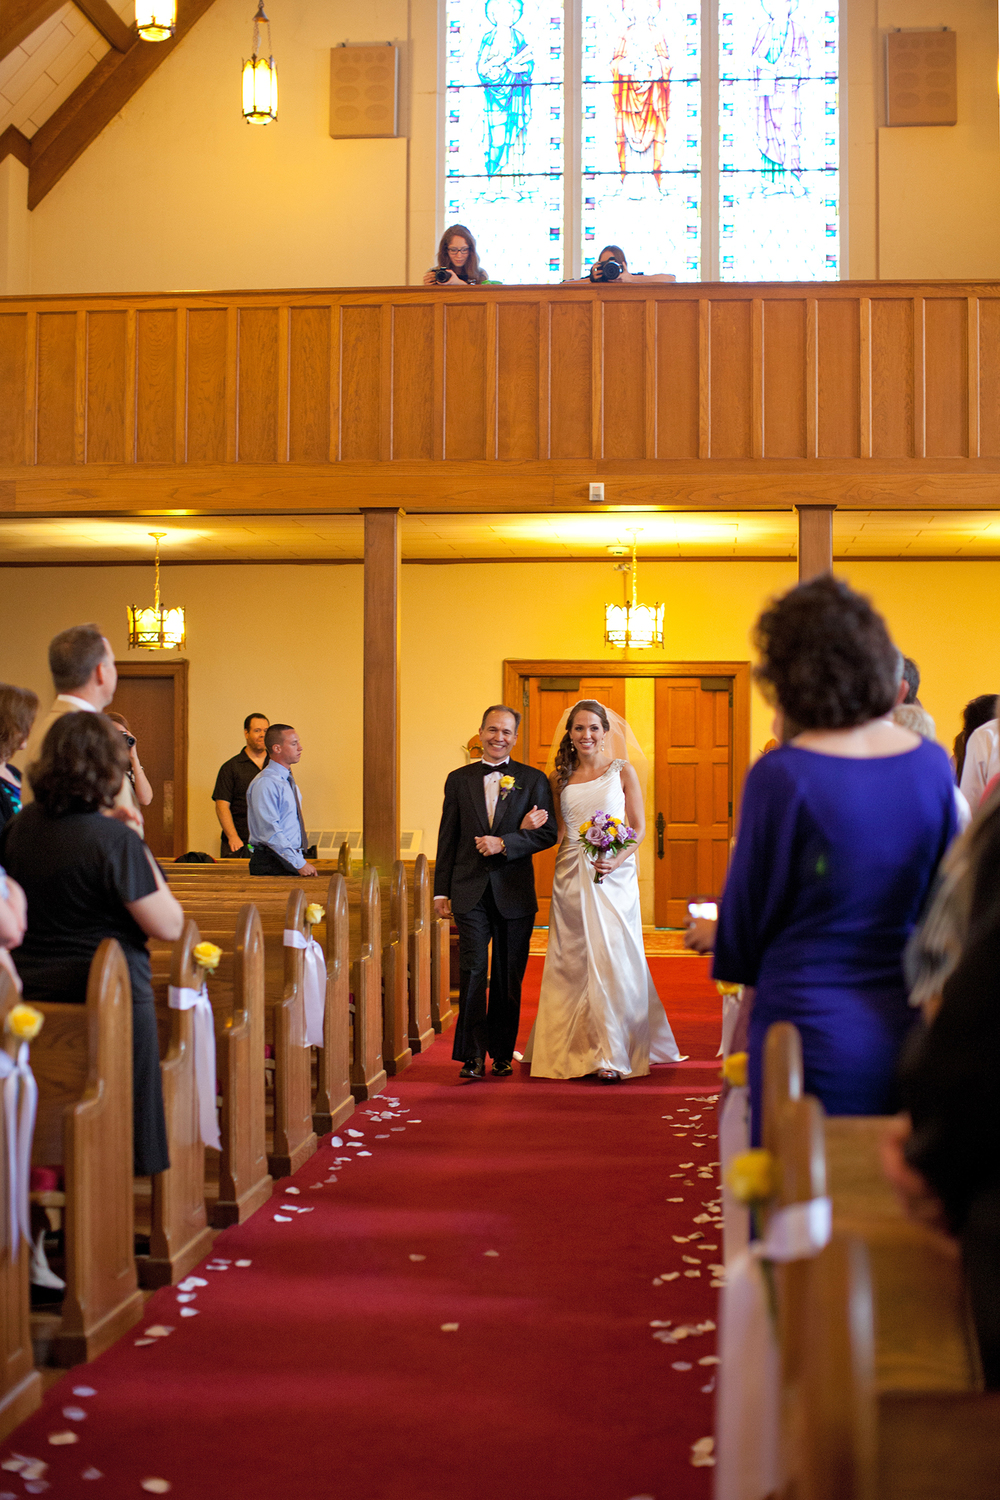 A Bride Walking Down the Aisle at FUMC